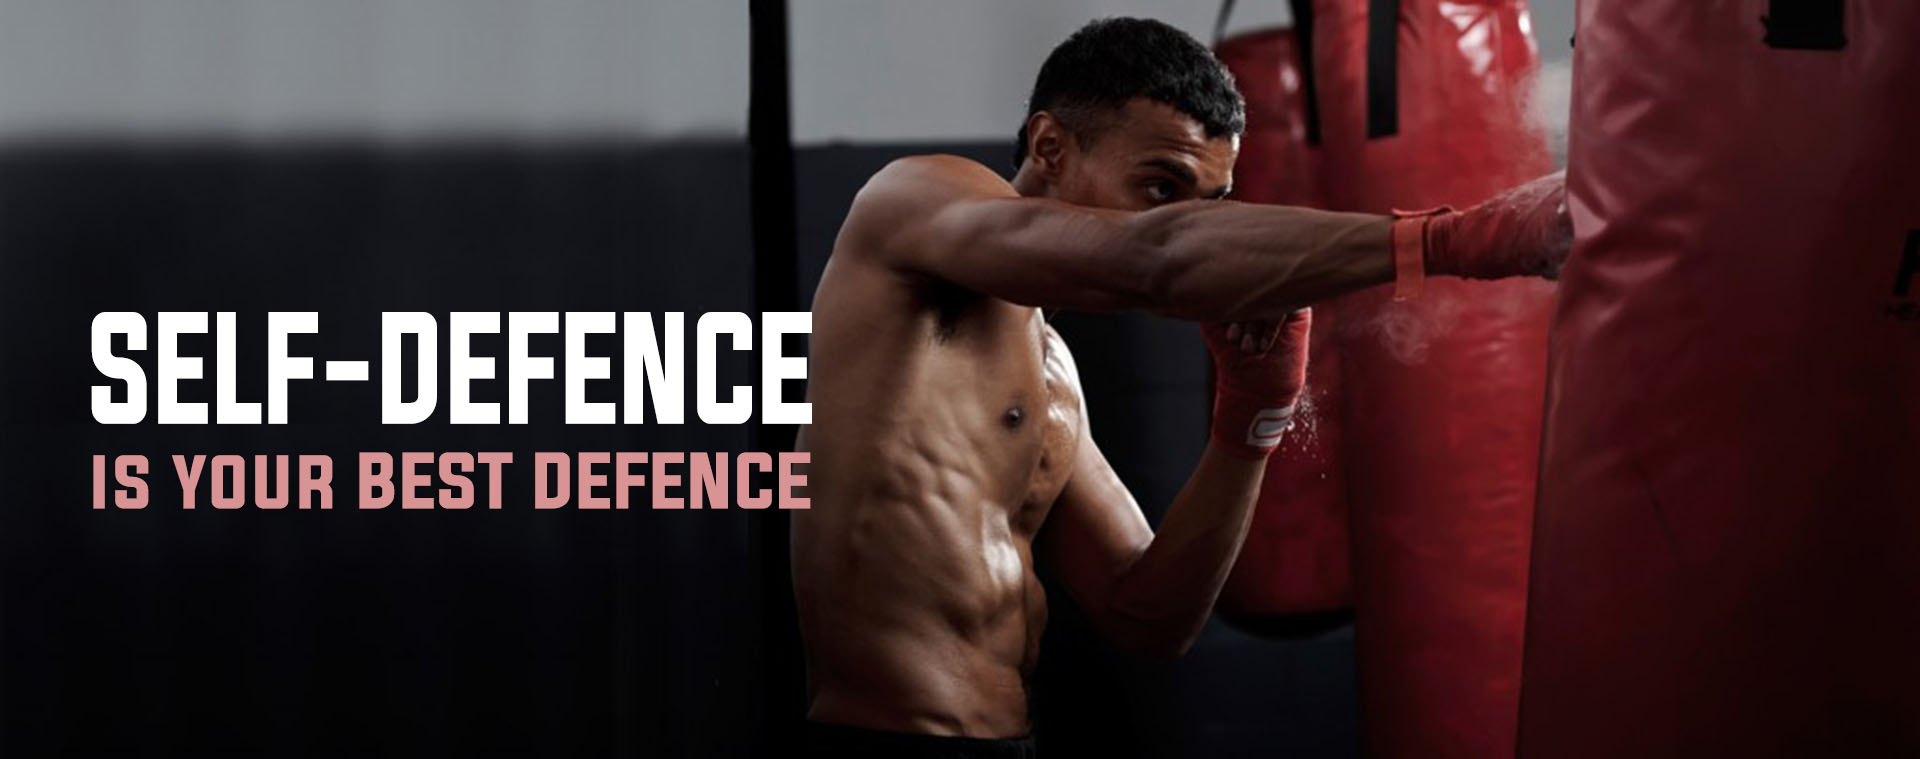 Fitness and Self-Defence Training Centre